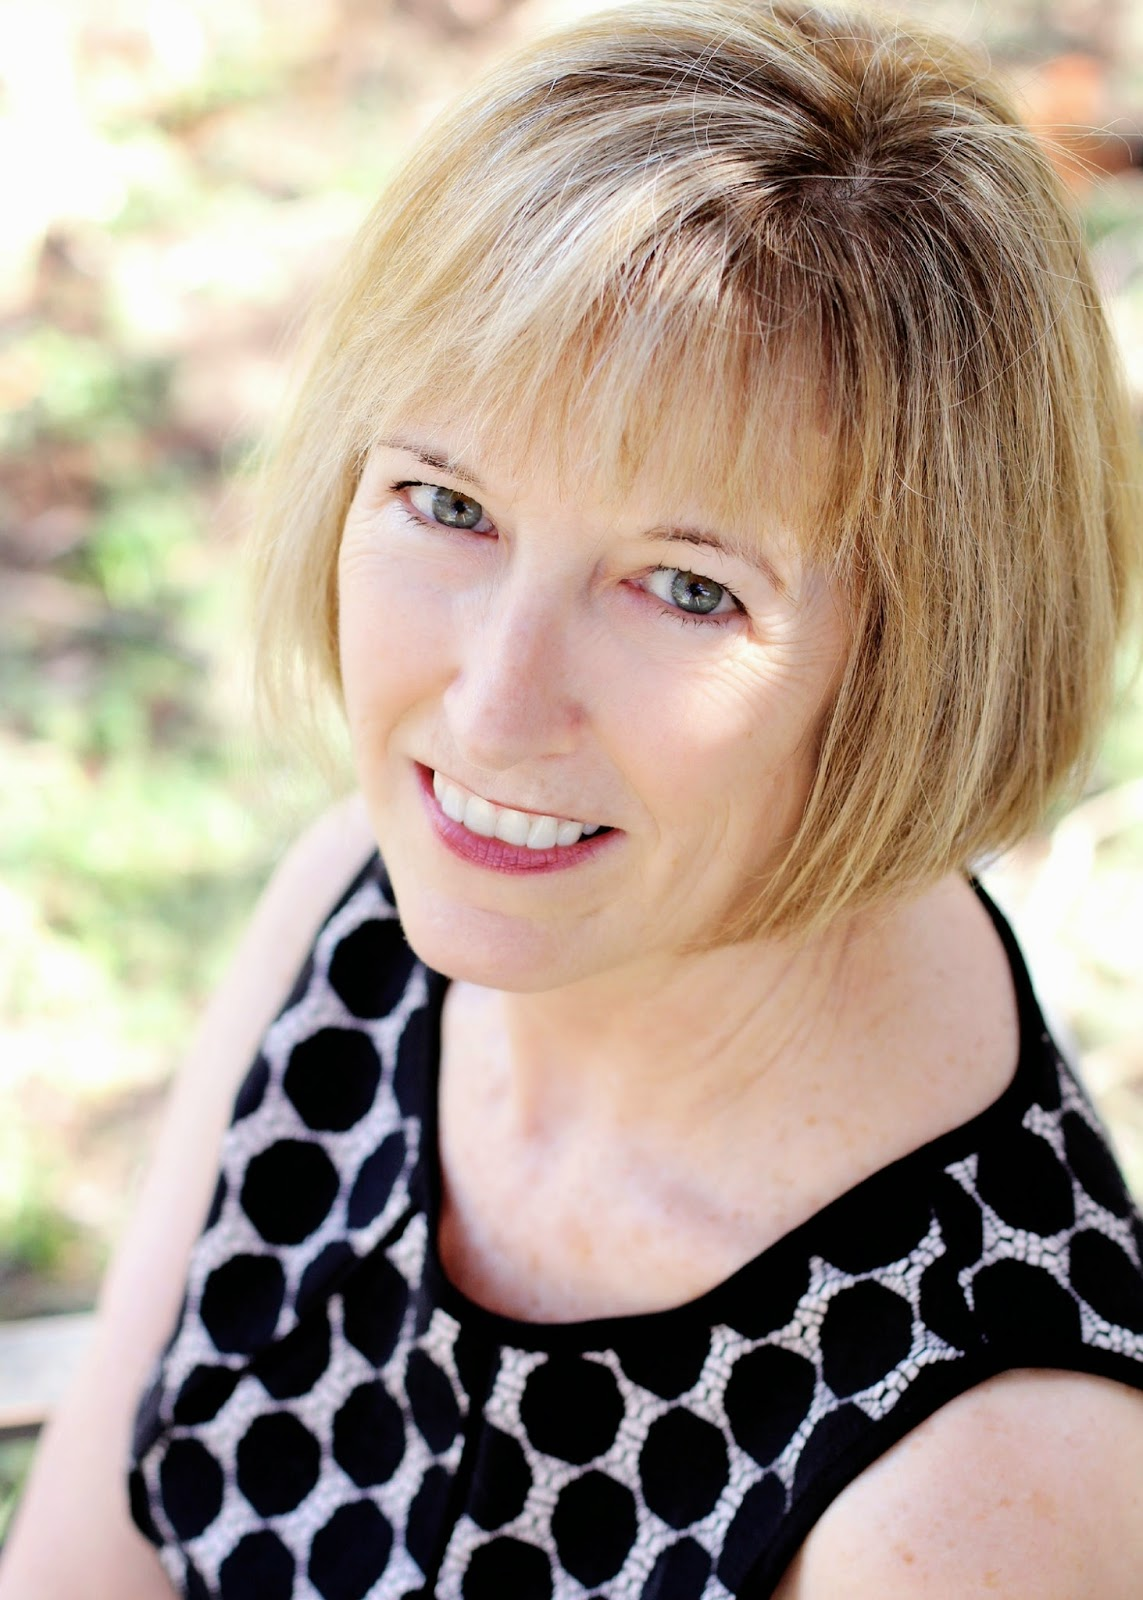 Guest Post & Giveaway: Anne Bustard on Musicality: Composing with Repetitions